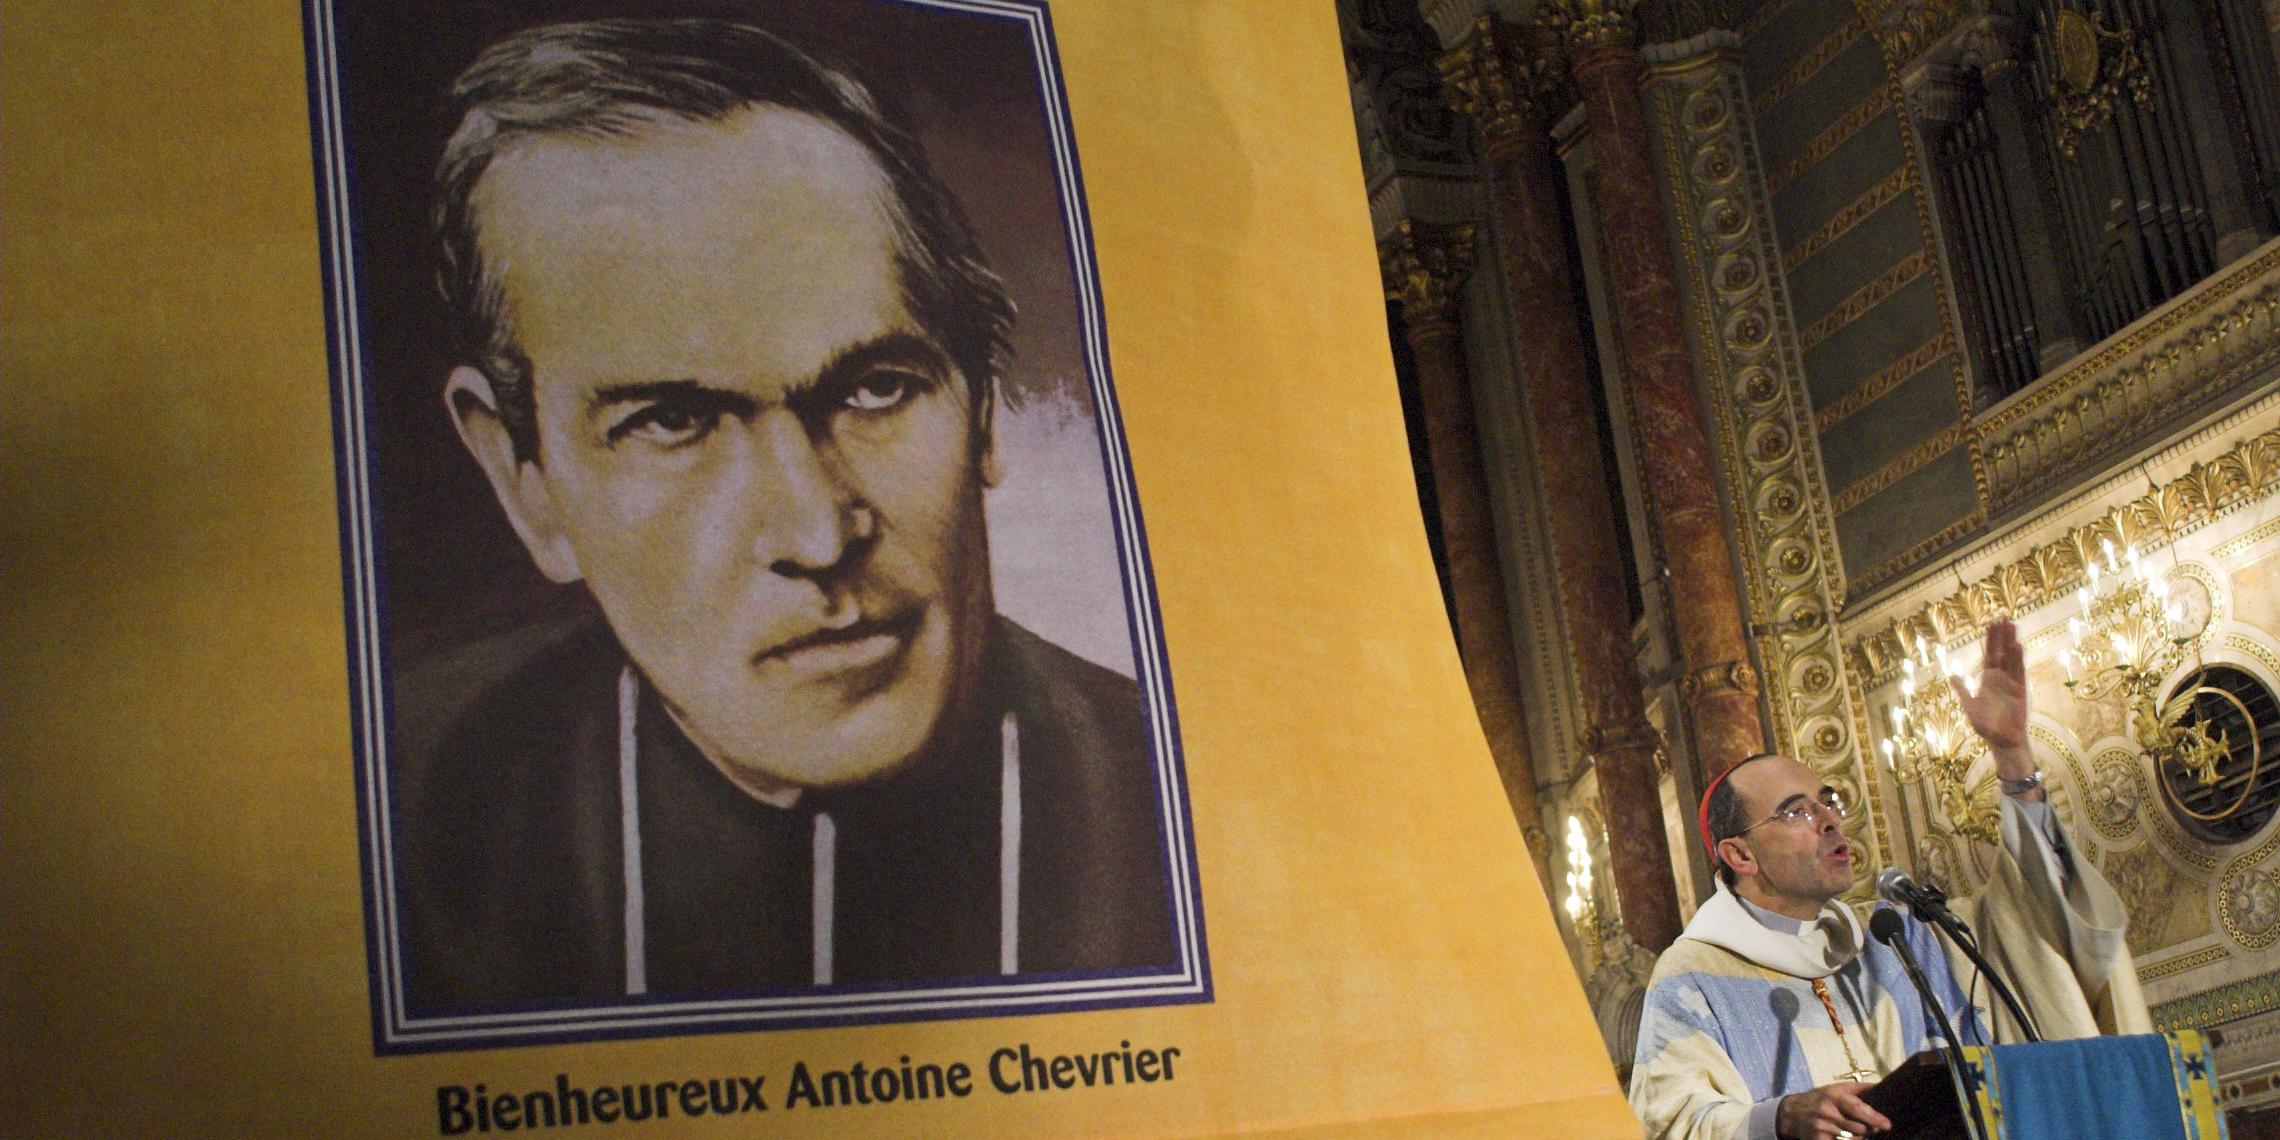 FATHER ANTOINE CHEVRIER